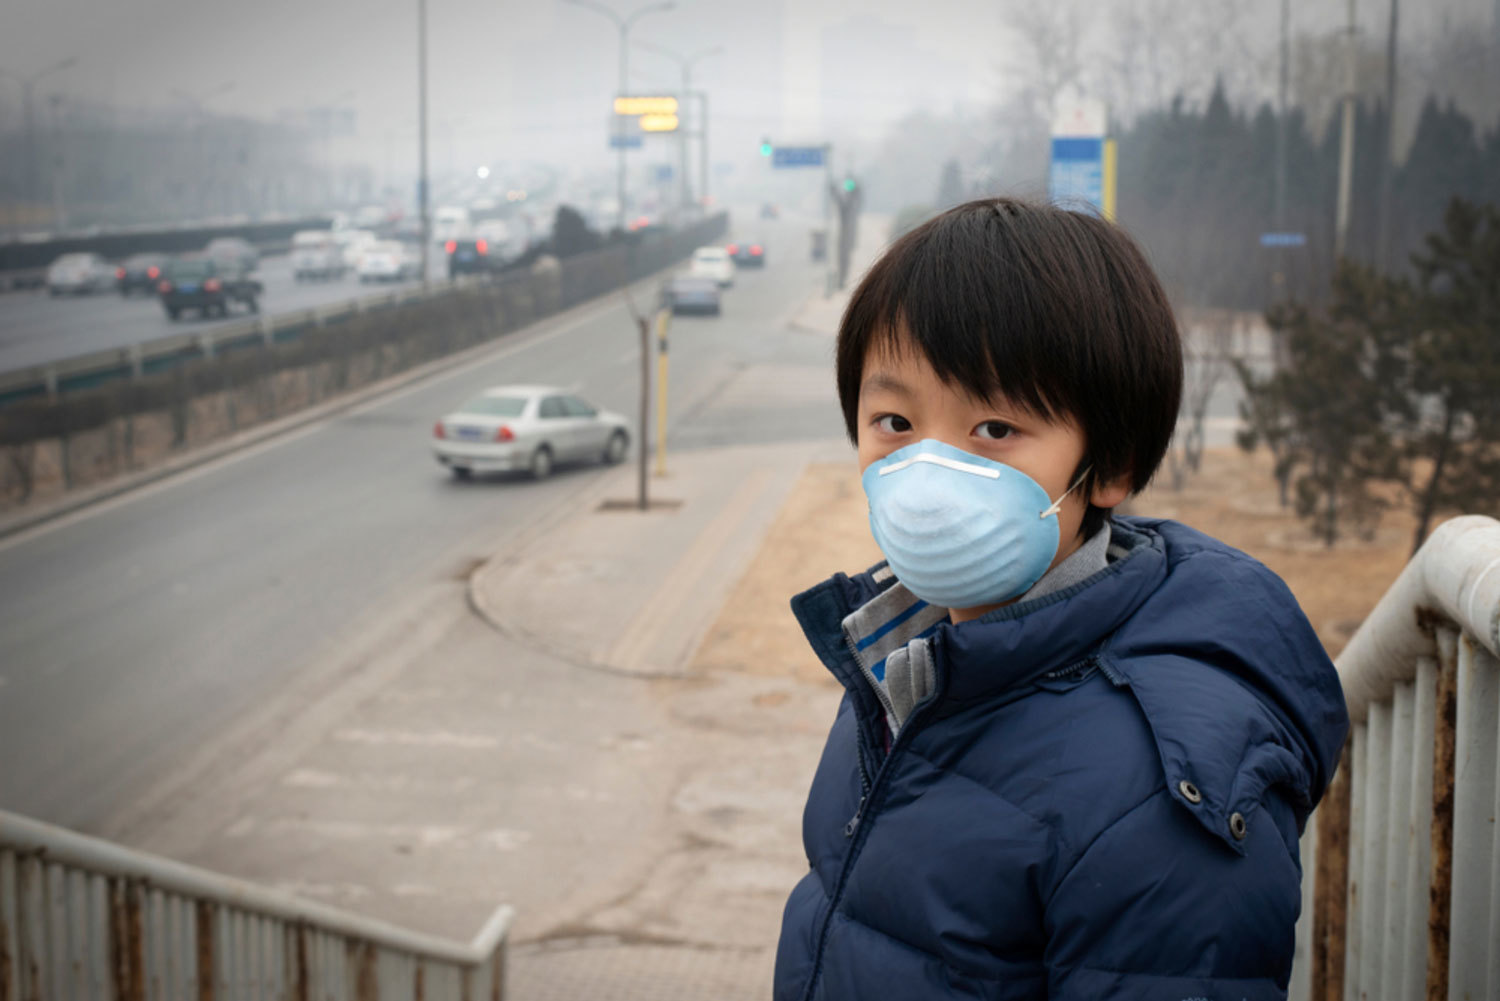 Vehicle Pollution Causes 4 Million New Child Asthma Cases